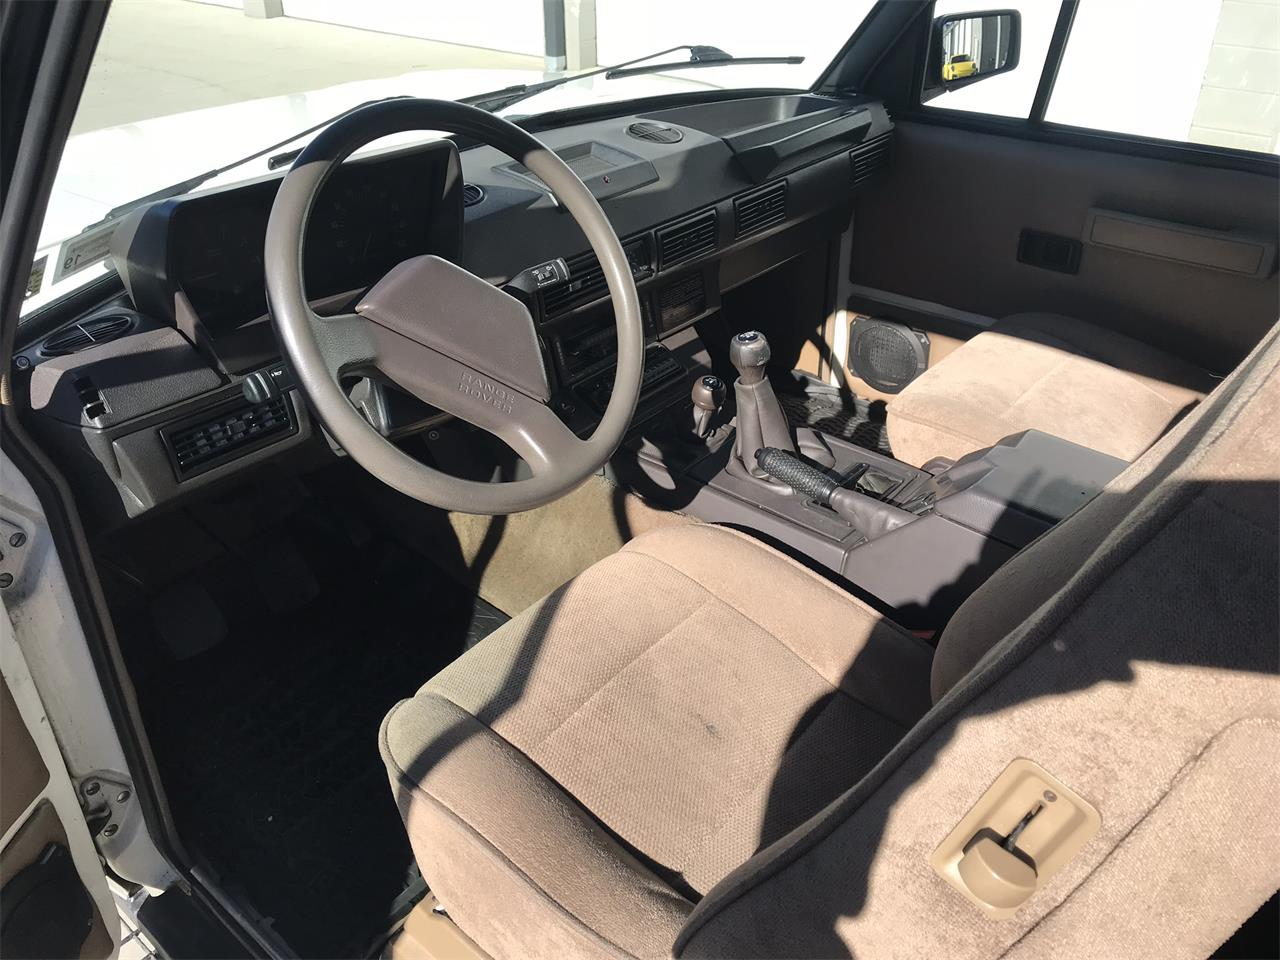 1990 Land Rover Range Rover for sale in Boise, ID – photo 22